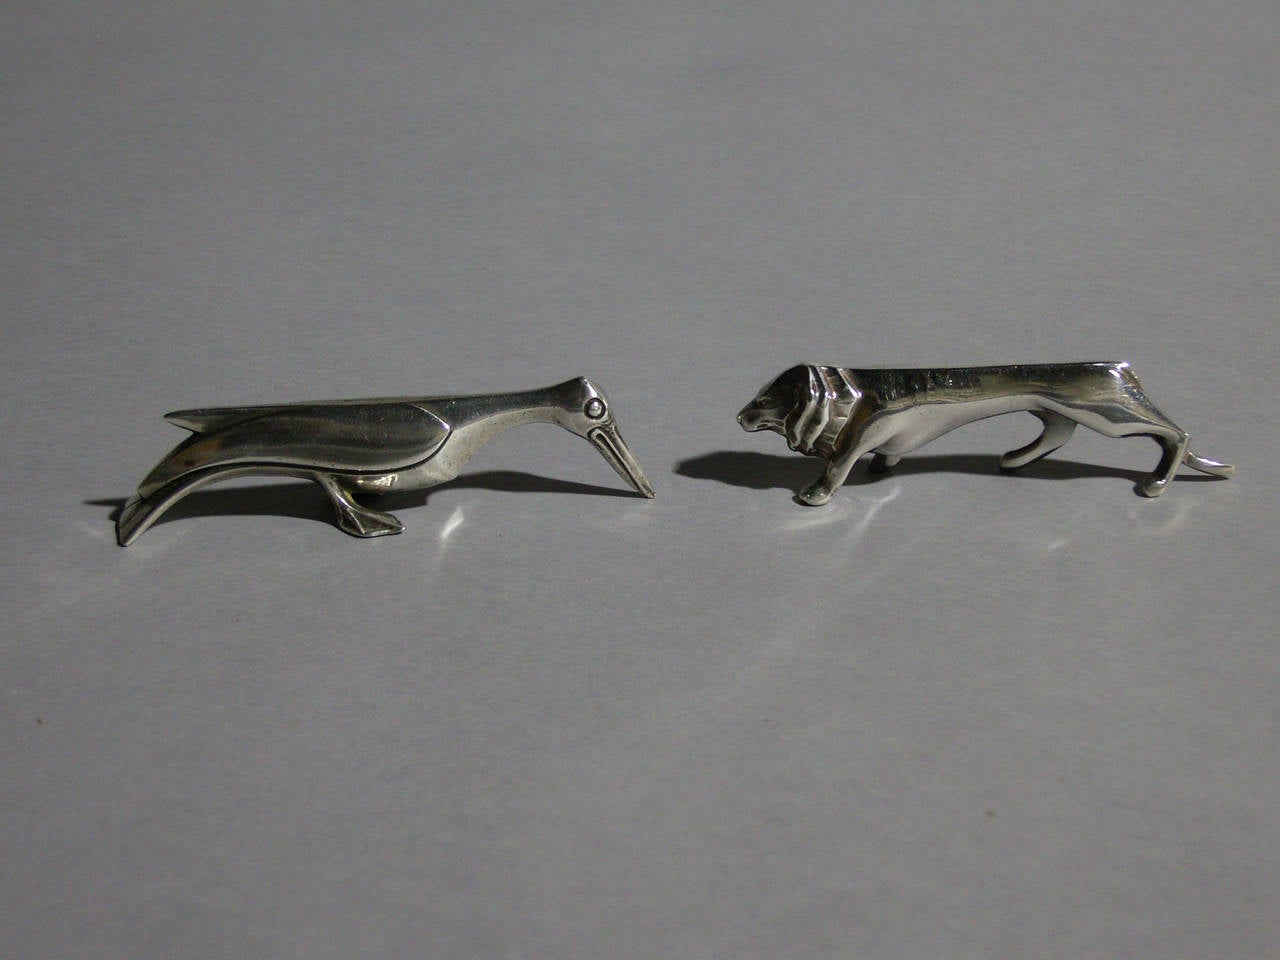 Set of 12 fine French Art Deco silver plated knife rests designed by Sandoz for the Gallia line of Christofle. All 12 animals are different. Original case.  Average size of knife rests: H 0.8 inch x L 4.3 inch x W 0.8 inch.  H 2 cm. x L 10.5 cm. x